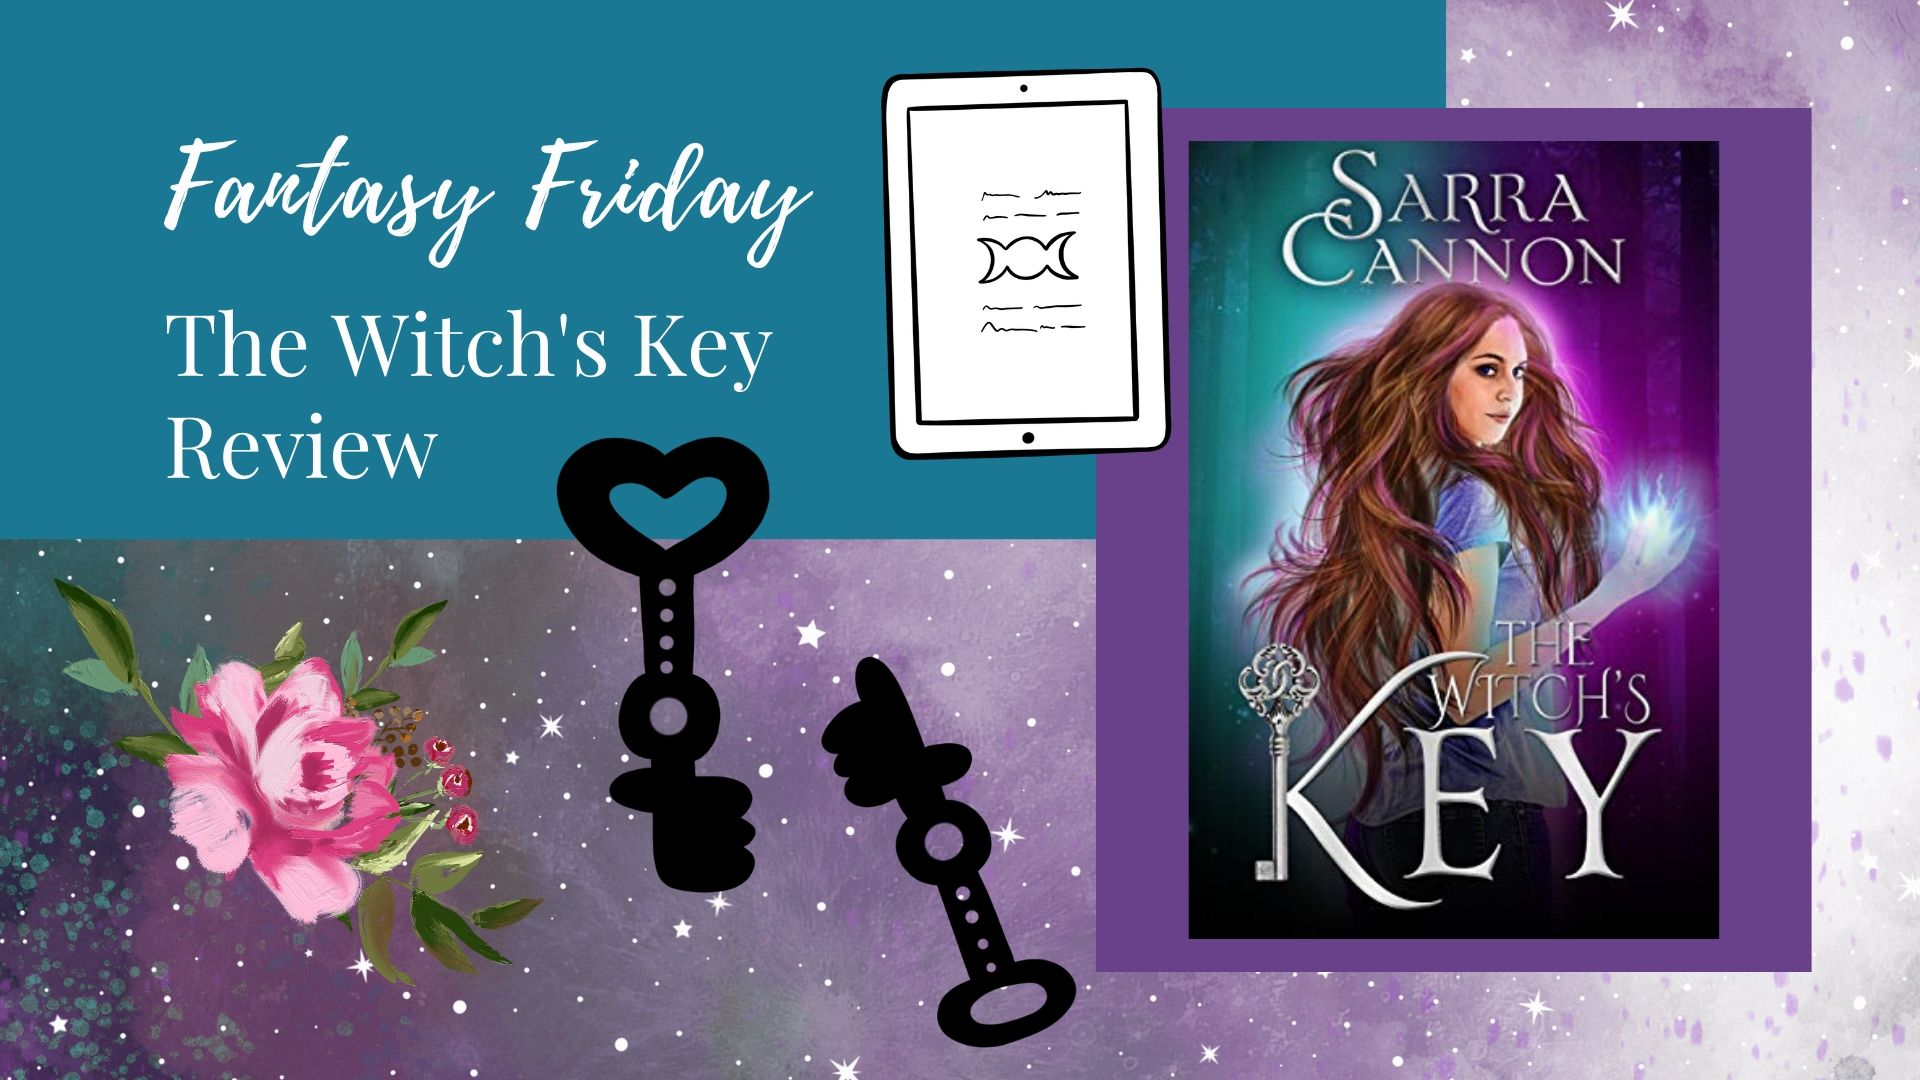 Fantasy Friday: The Witch's Key by Sarra Cannon